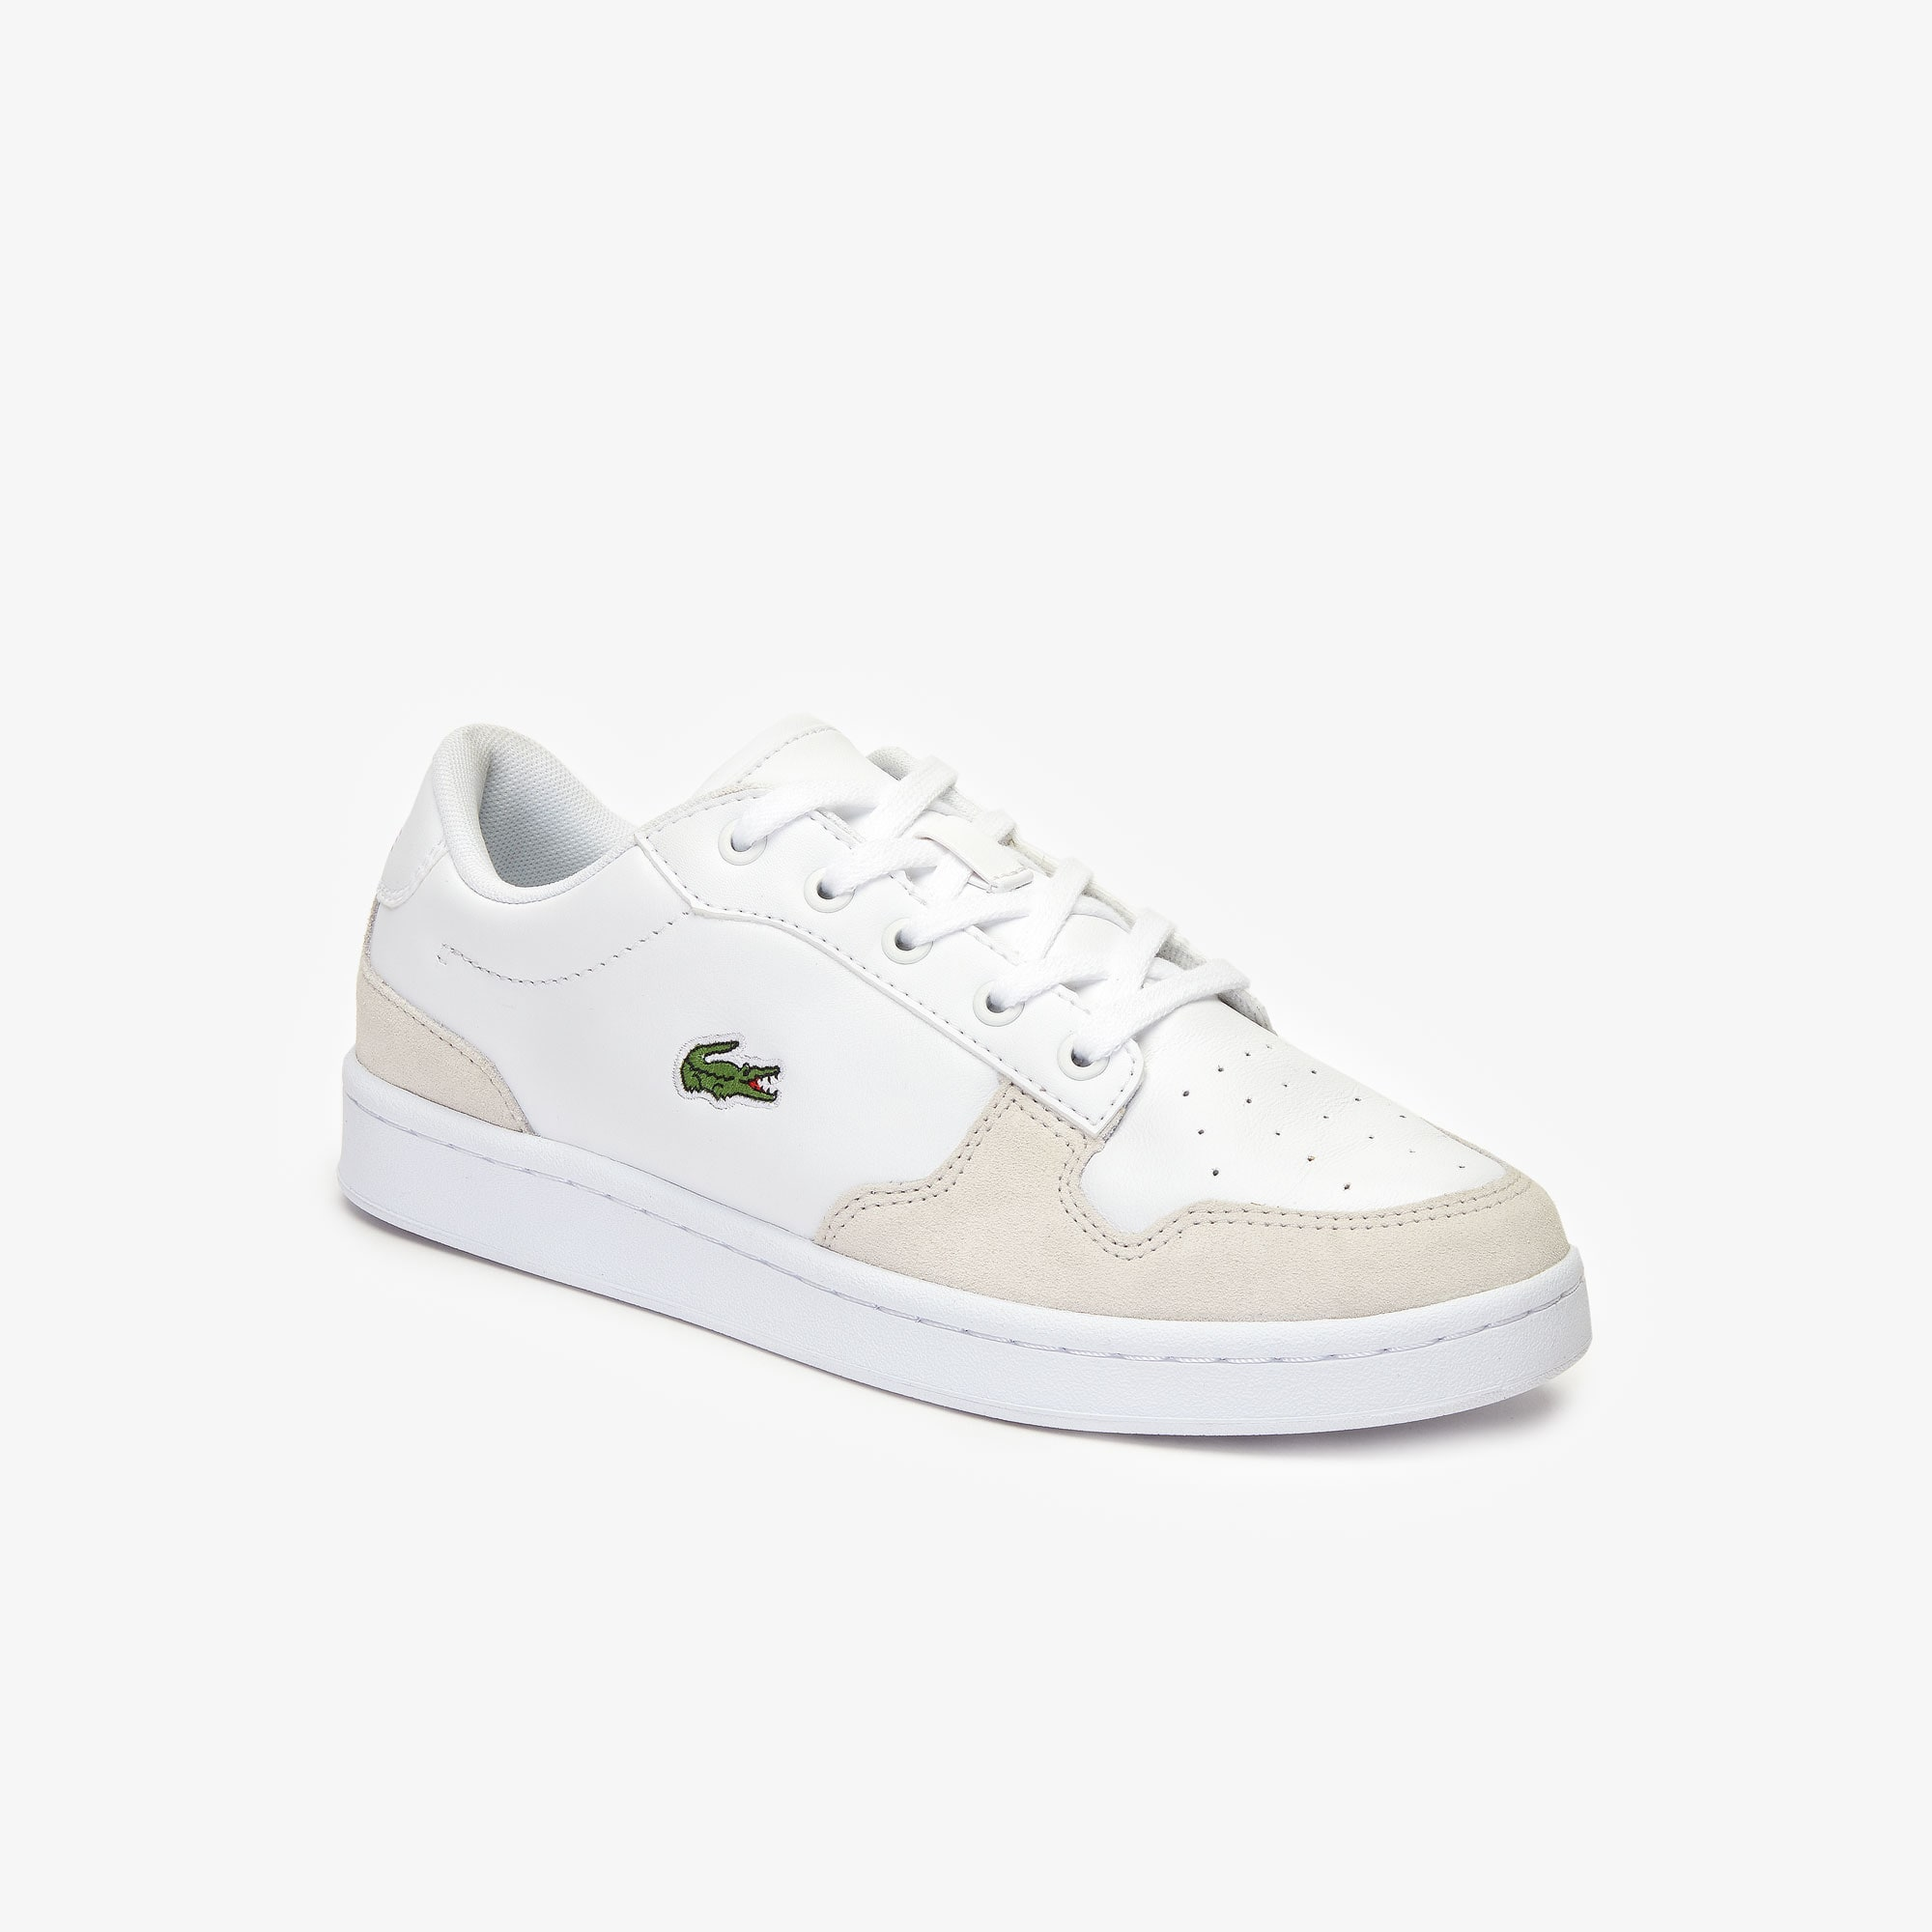 All Shoes | LACOSTE